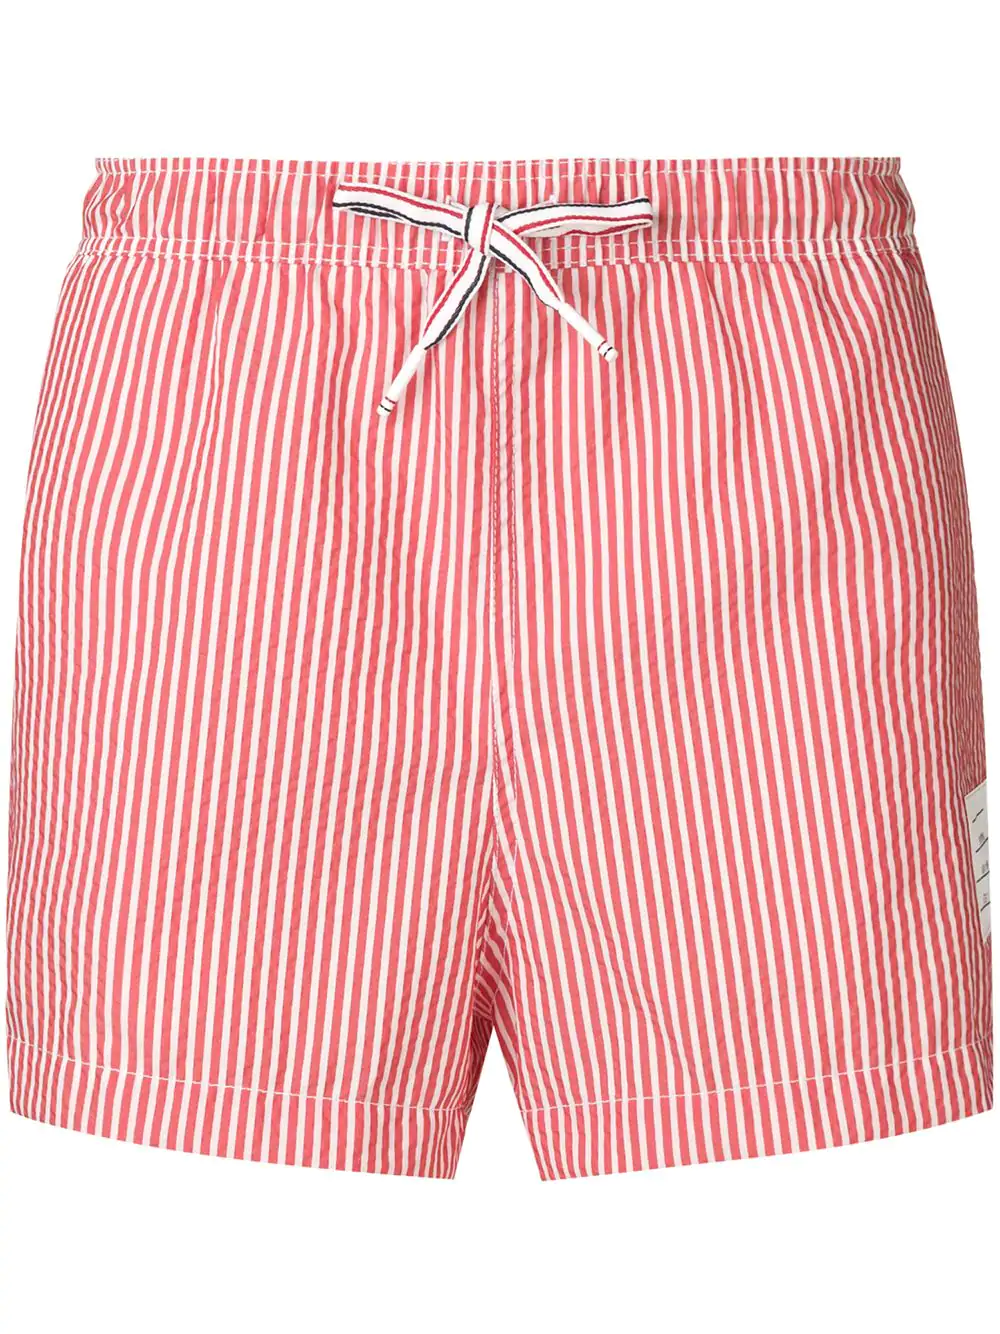 2eef6fcf57ec3 Thom Browne Striped Swimming Shorts - Red   ModeSens